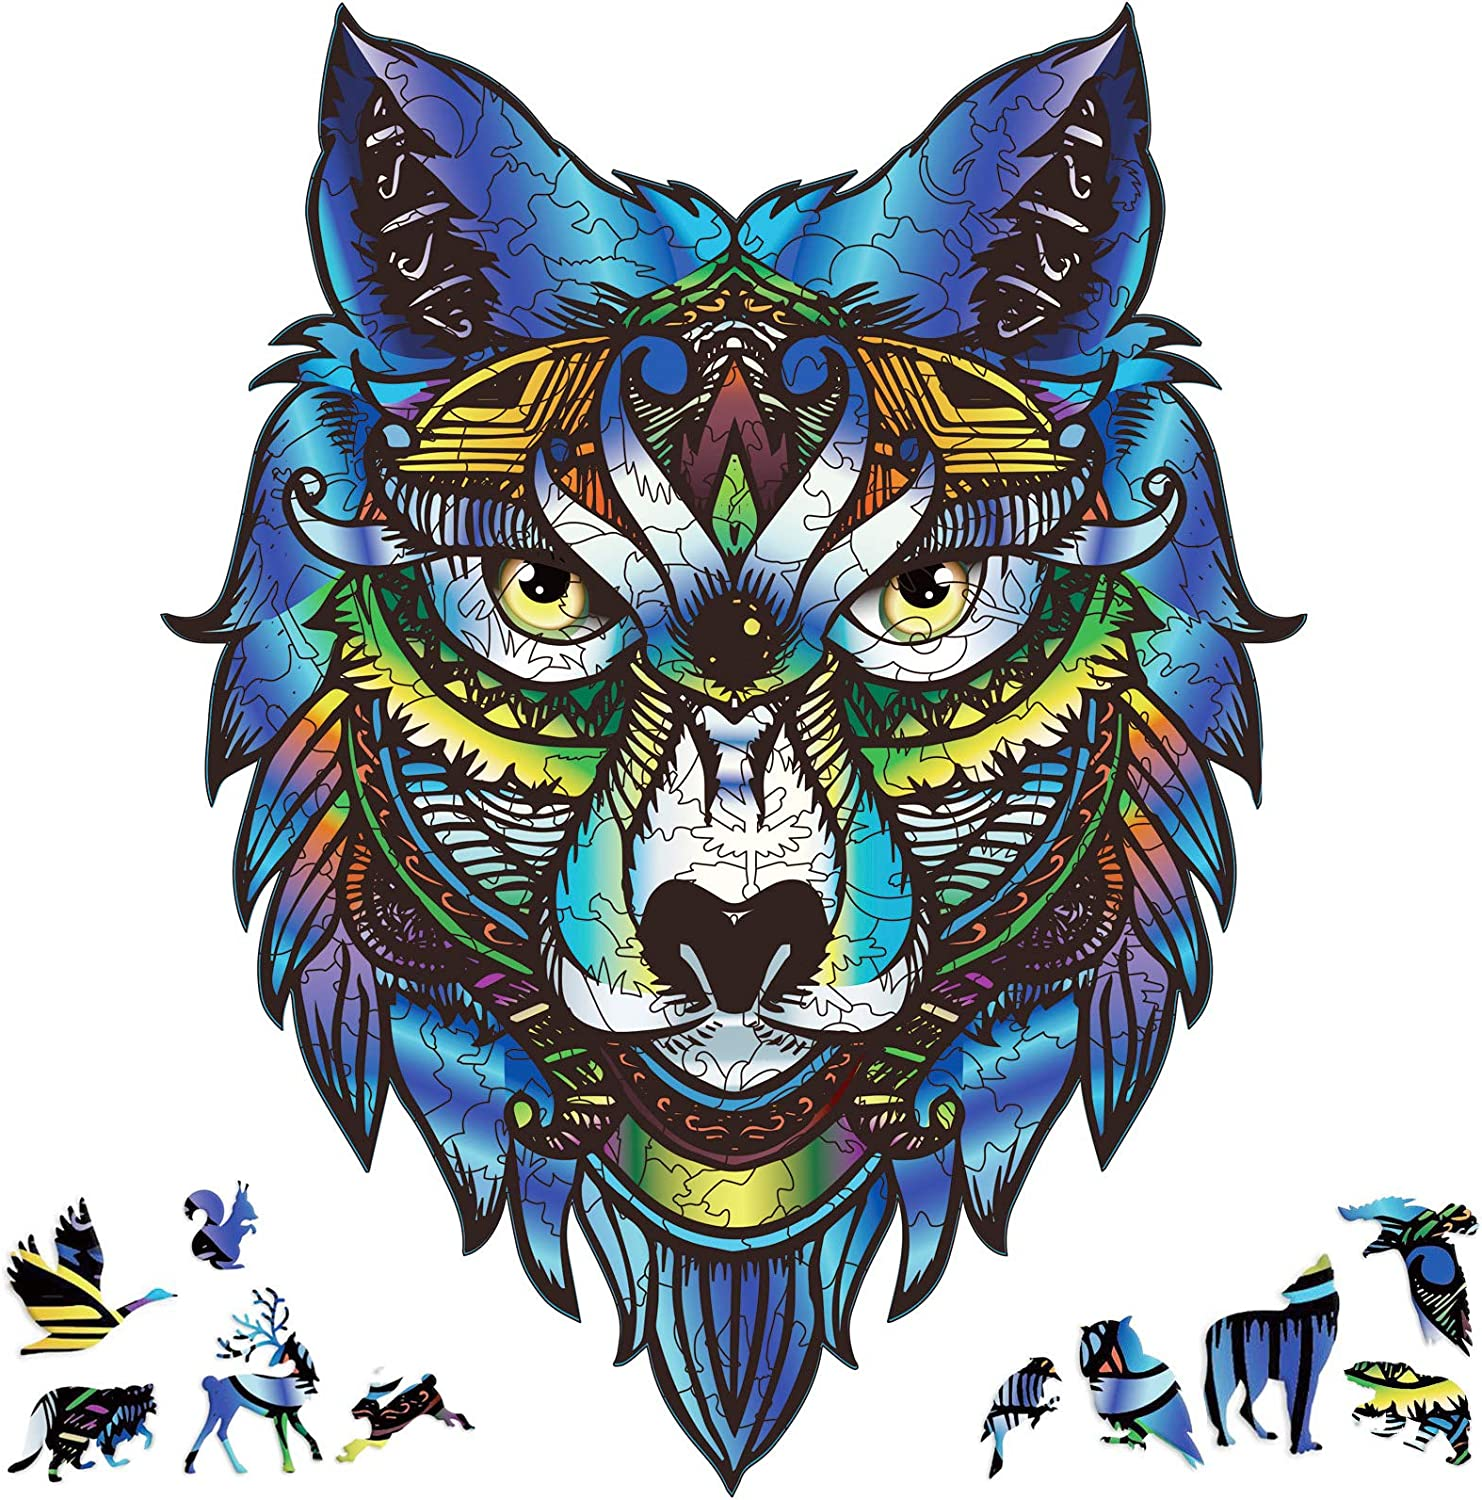 Majestic Wolf Wooden Puzzle Jigsaw Animal Mosaic Puzzle Gift For Holiday